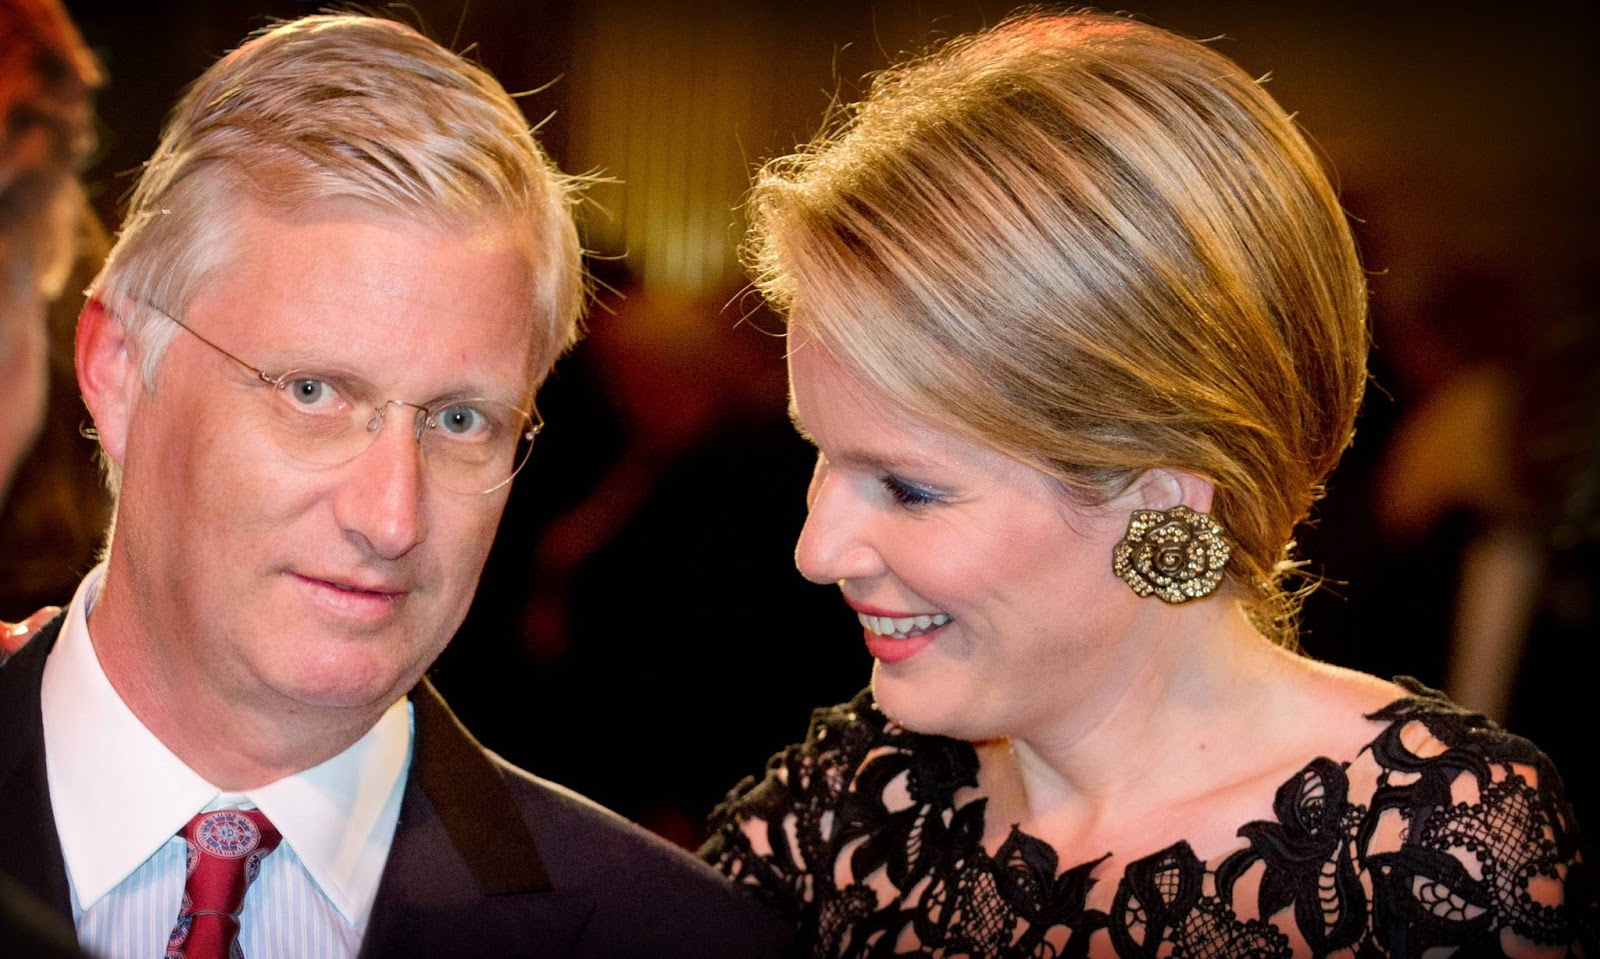 King Philippe, Queen Mathilde, Prince Laurent and Princess Claire of Belgium